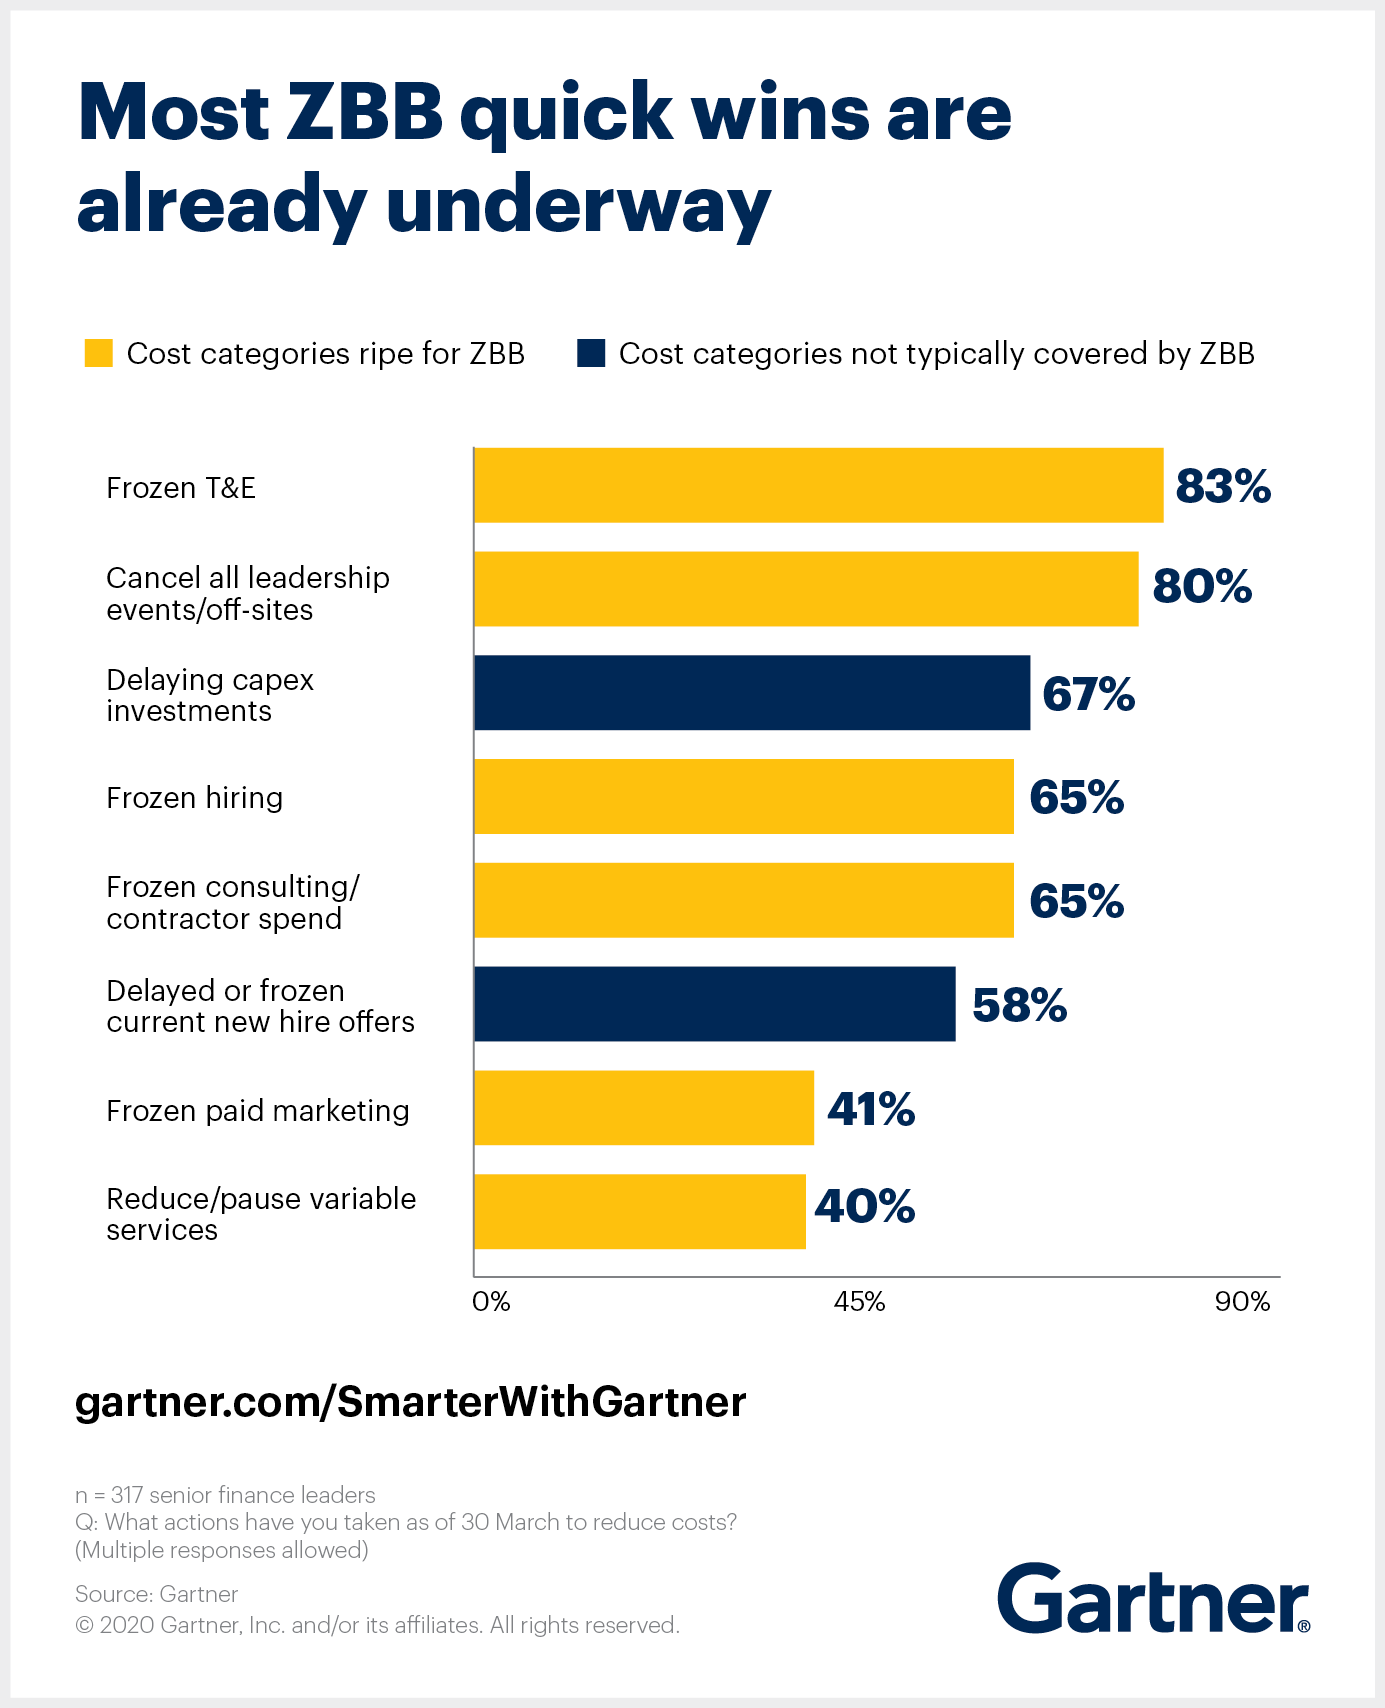 Gartner illustrates the types of costs best suited for zero-based budgeting. Many of these quick wins are already underway.